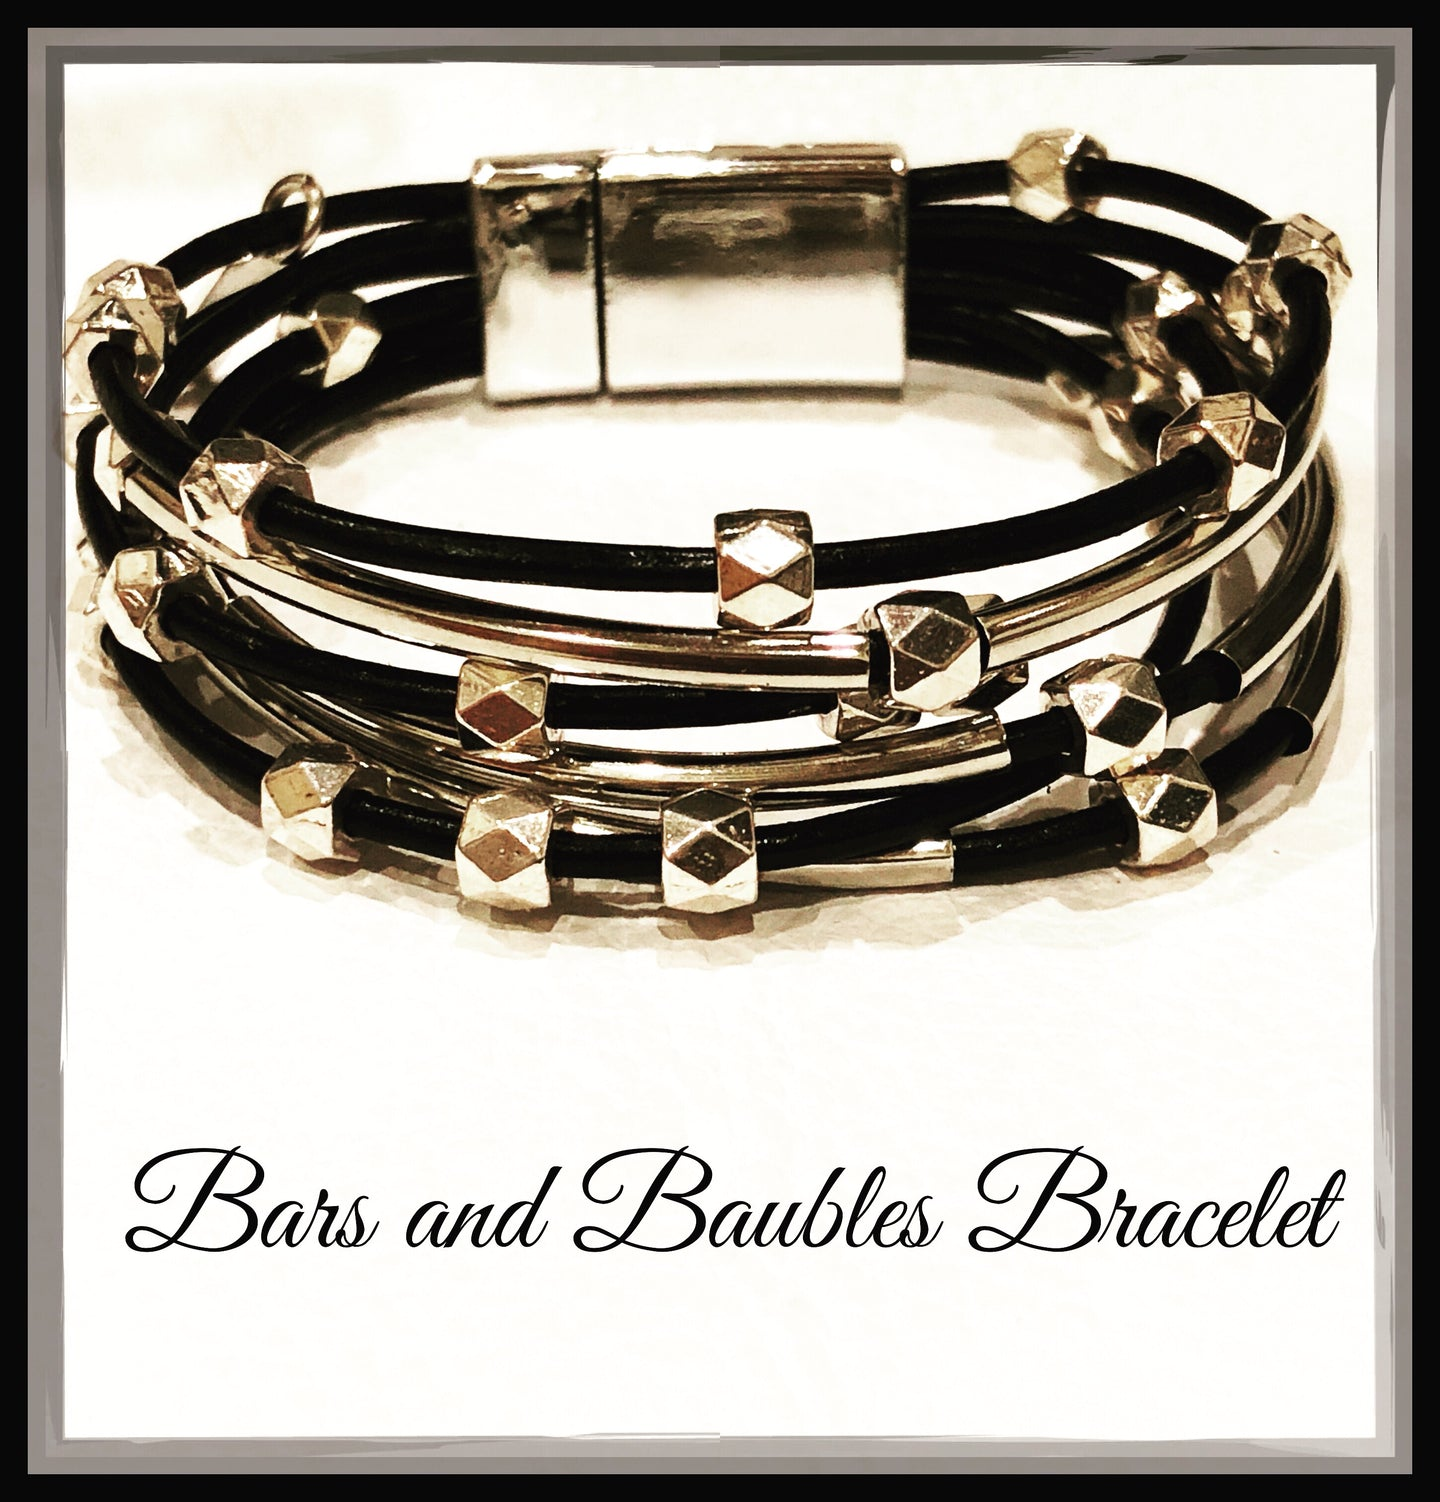 Bars and Baubles Bracelet